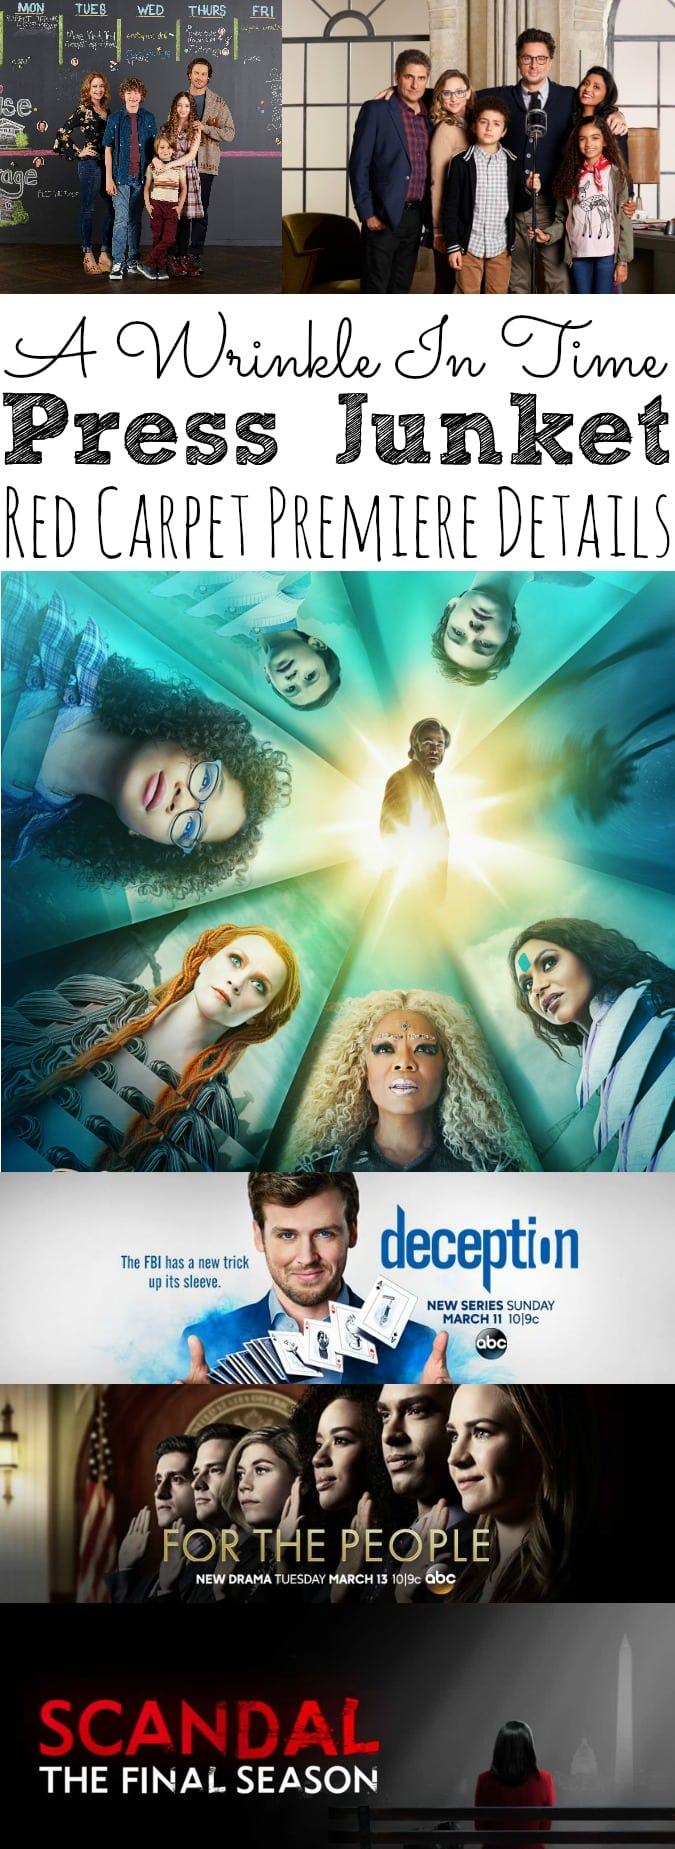 Finding The Tesseract In A Wrinkle In Time Movie Press Junket - simplytodaylife.com